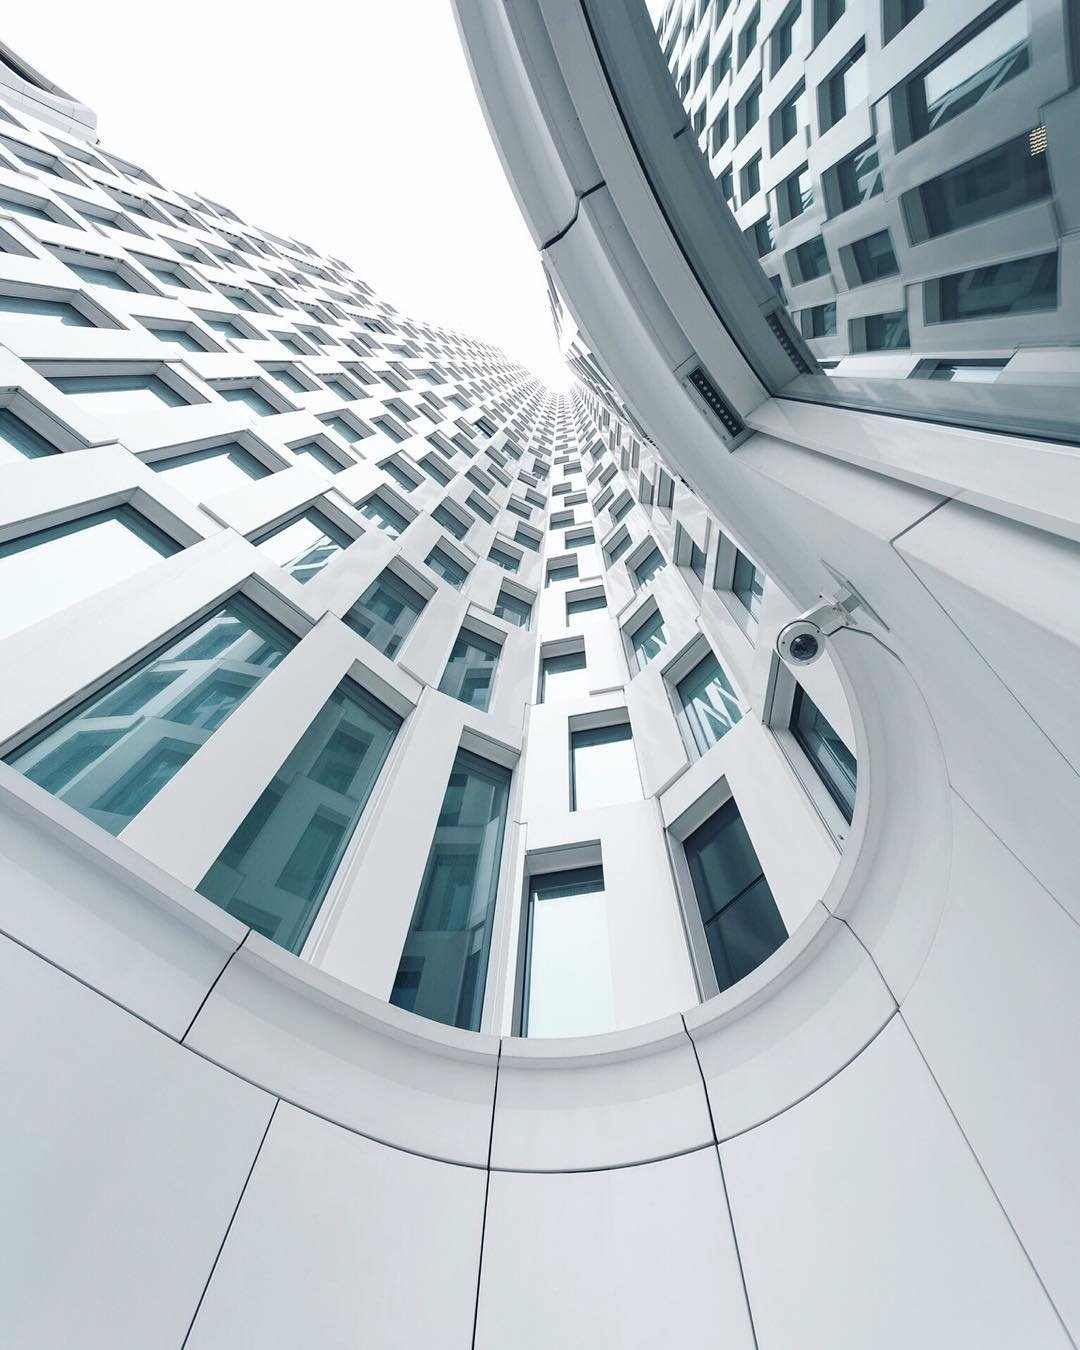 white building with windows by photographer jumpingsole